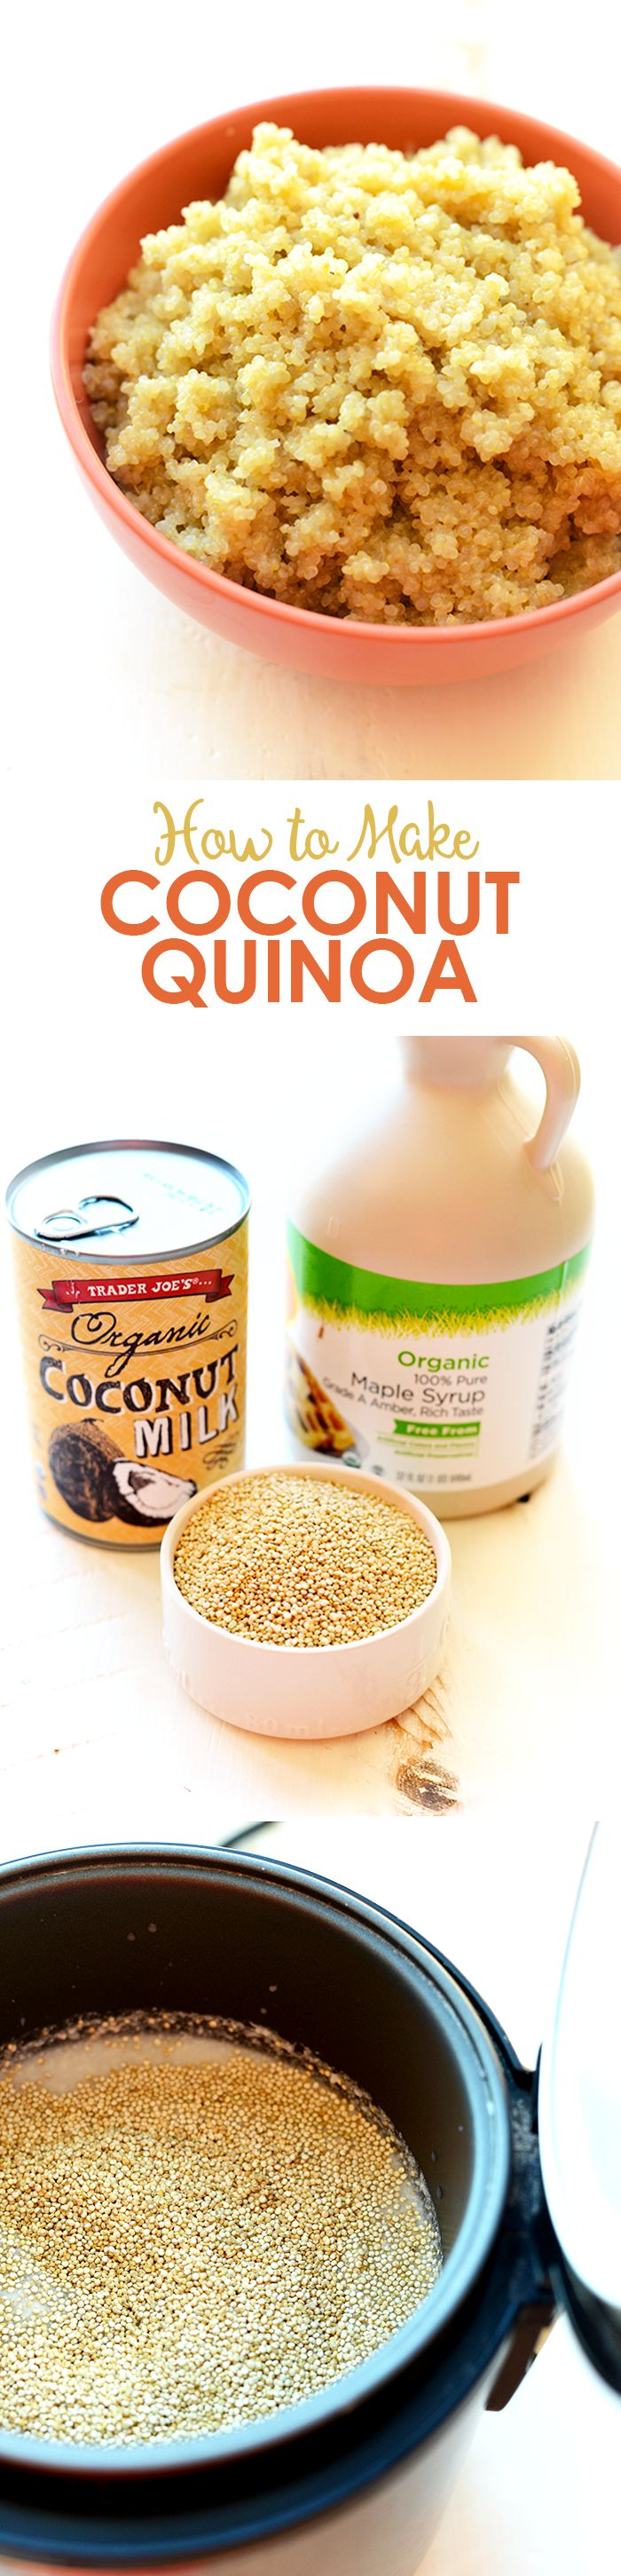 How To Make Coconut Quinoa